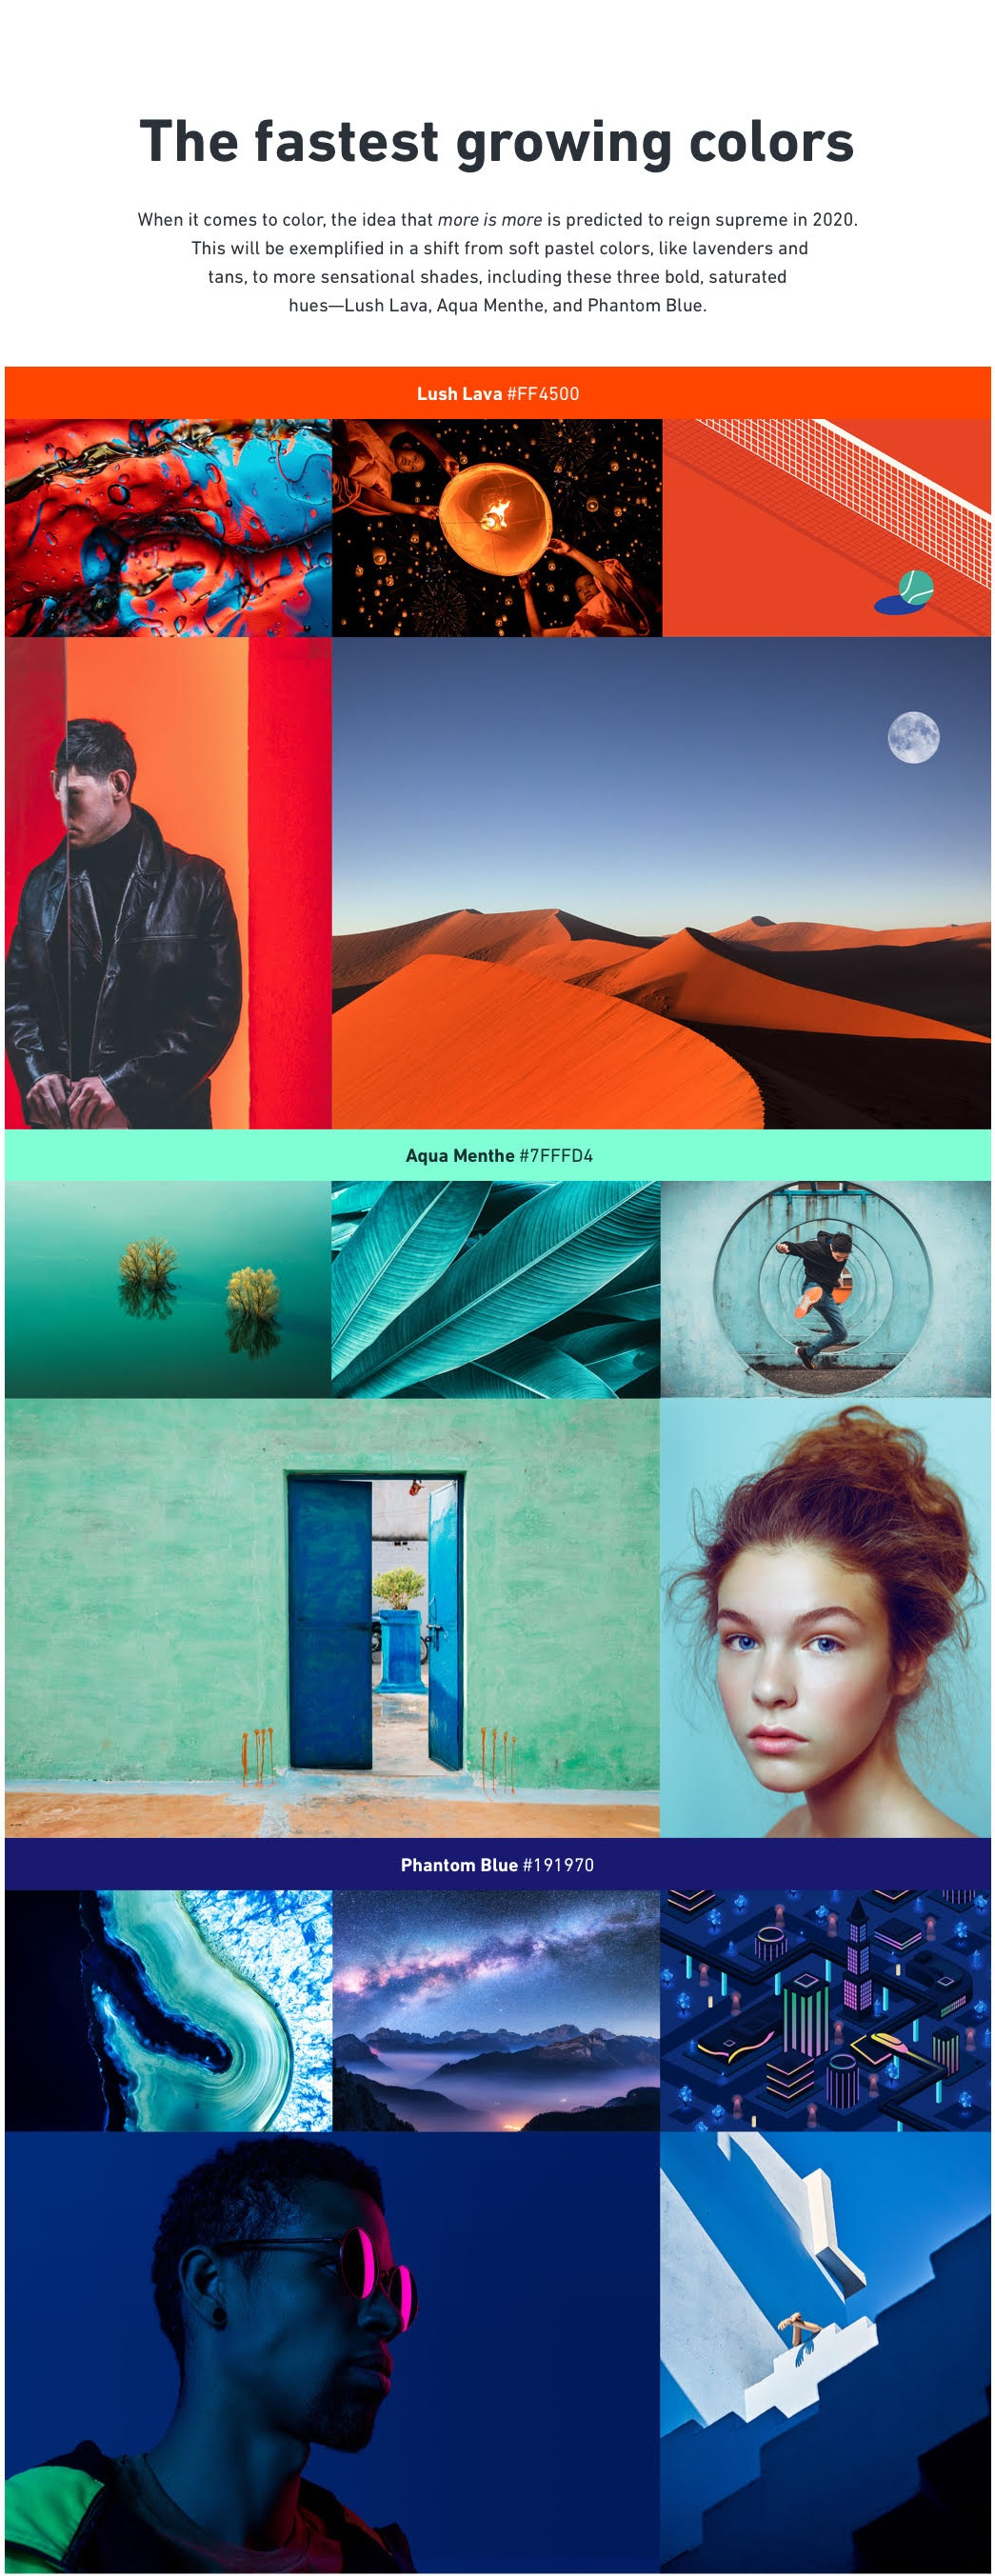 Shutterstock color trends for 2020